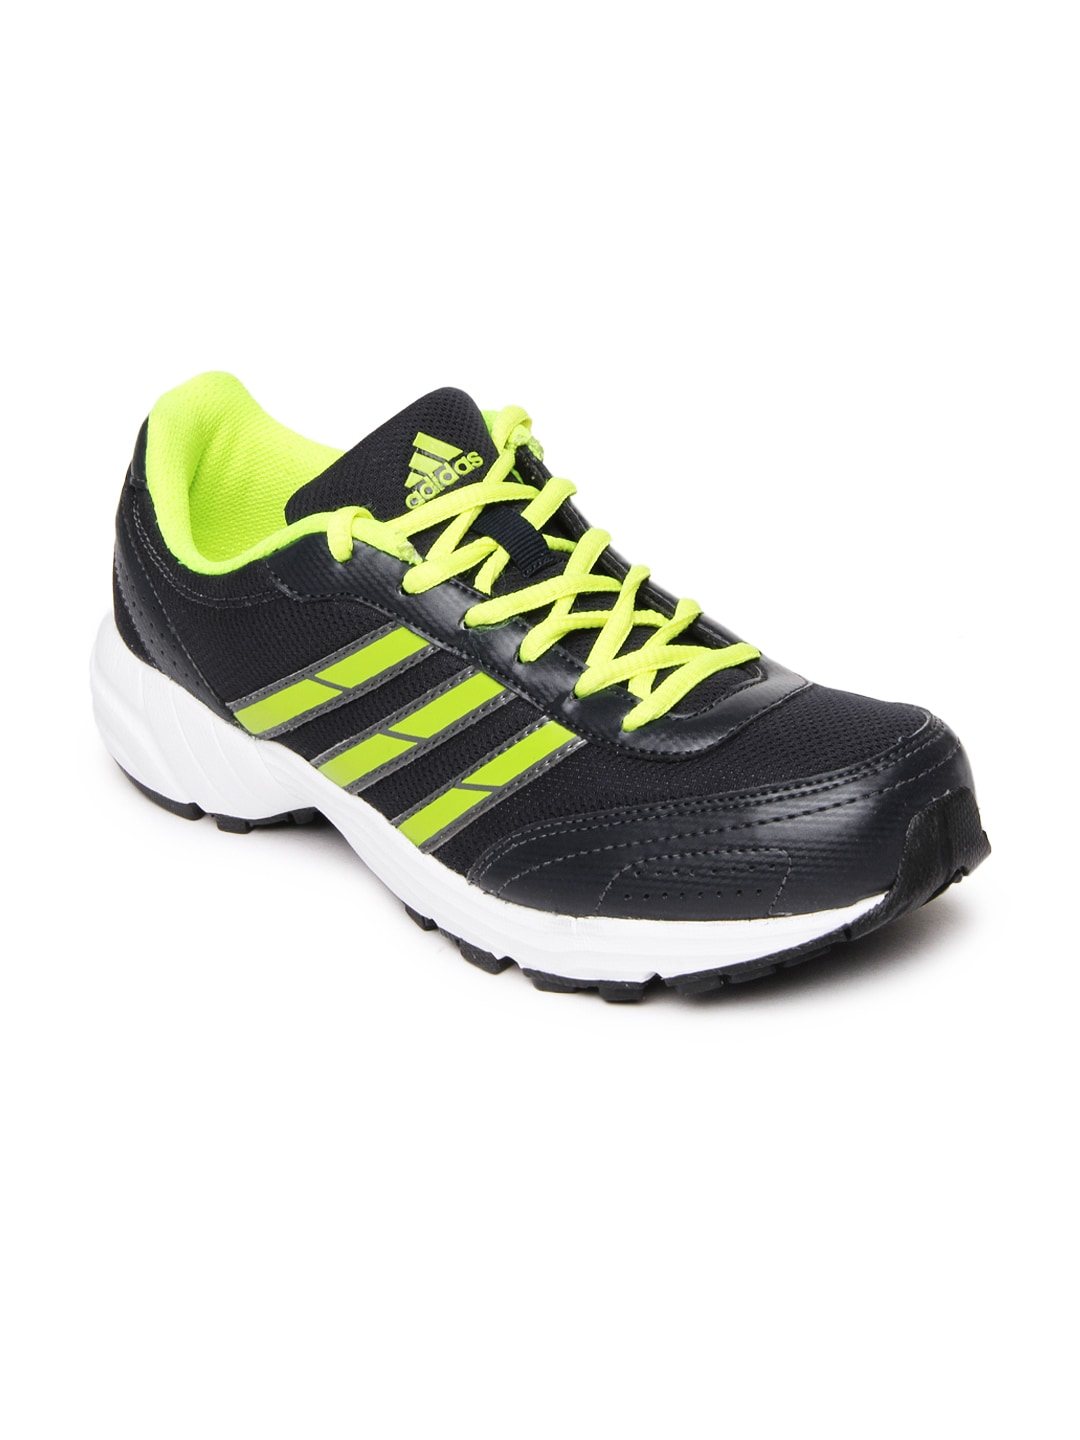 premium selection 33987 5762d Adidas Shoes Price In India For Mens Los-granados-apartment.co.uk